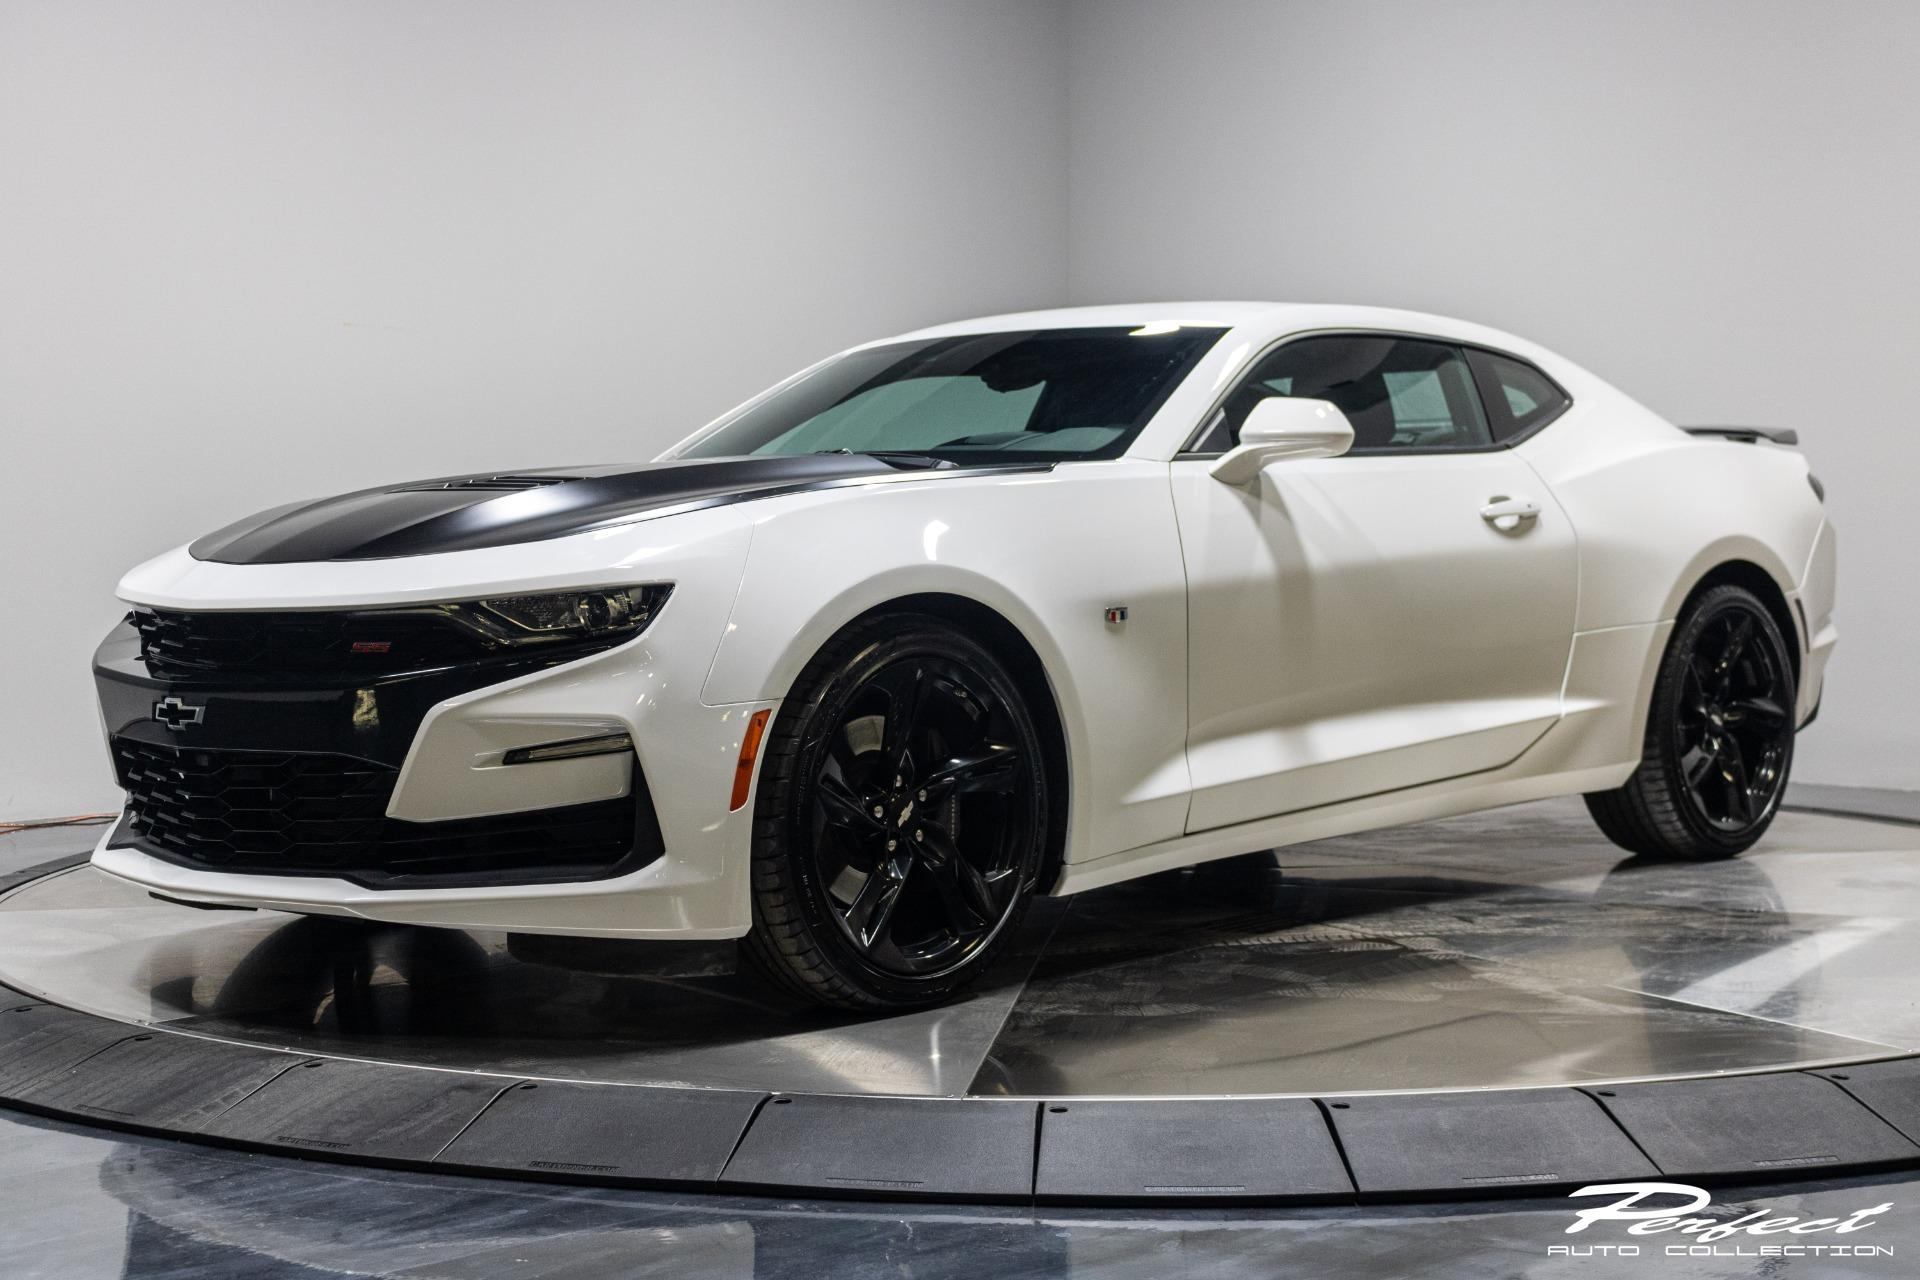 Used 2019 Chevrolet Camaro 2SS Coupe 2D for sale Sold at Perfect Auto Collection in Akron OH 44310 1